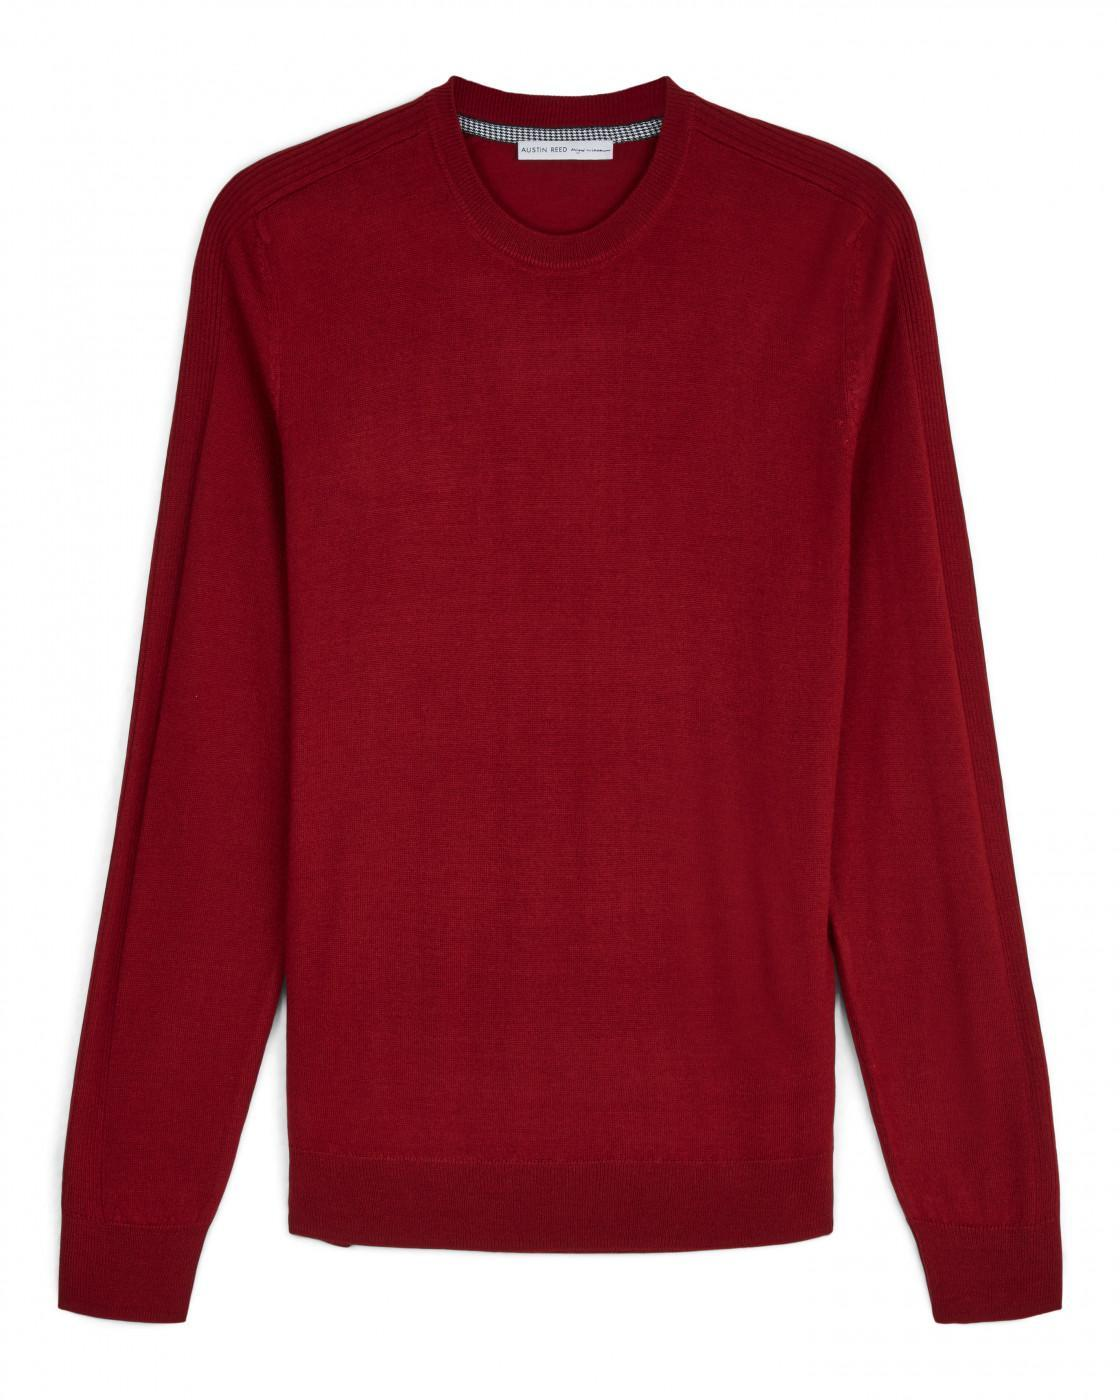 Crew Neck Knit With Rib Detail By Austin Reed Thread